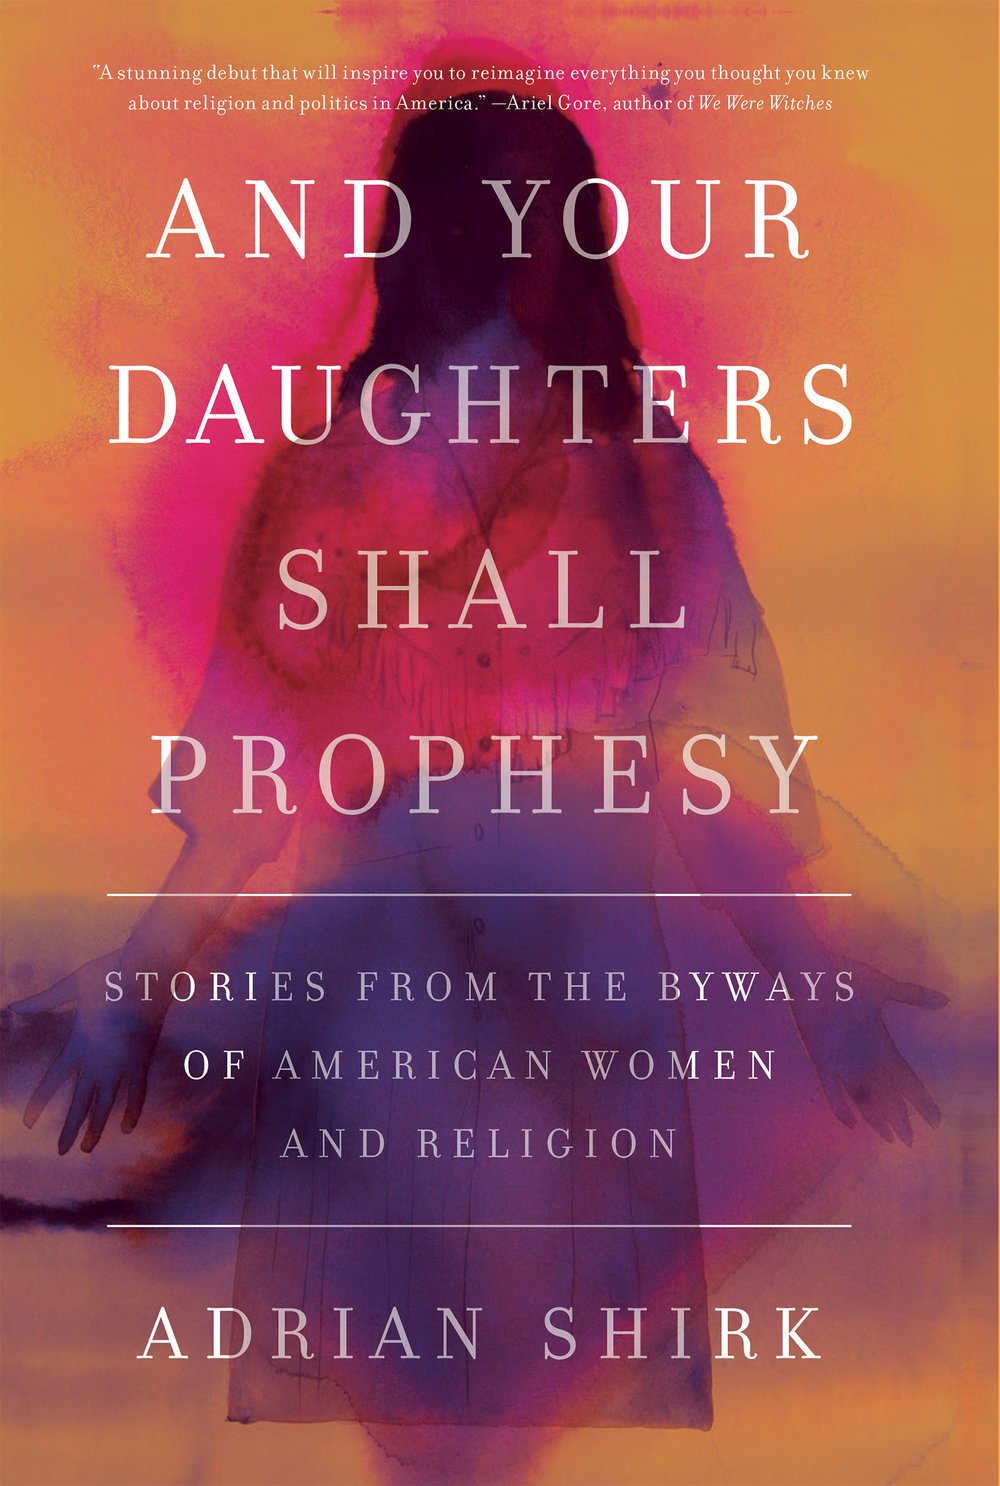 And Your Daughters Shall Prophes_cover_FIN.jpg